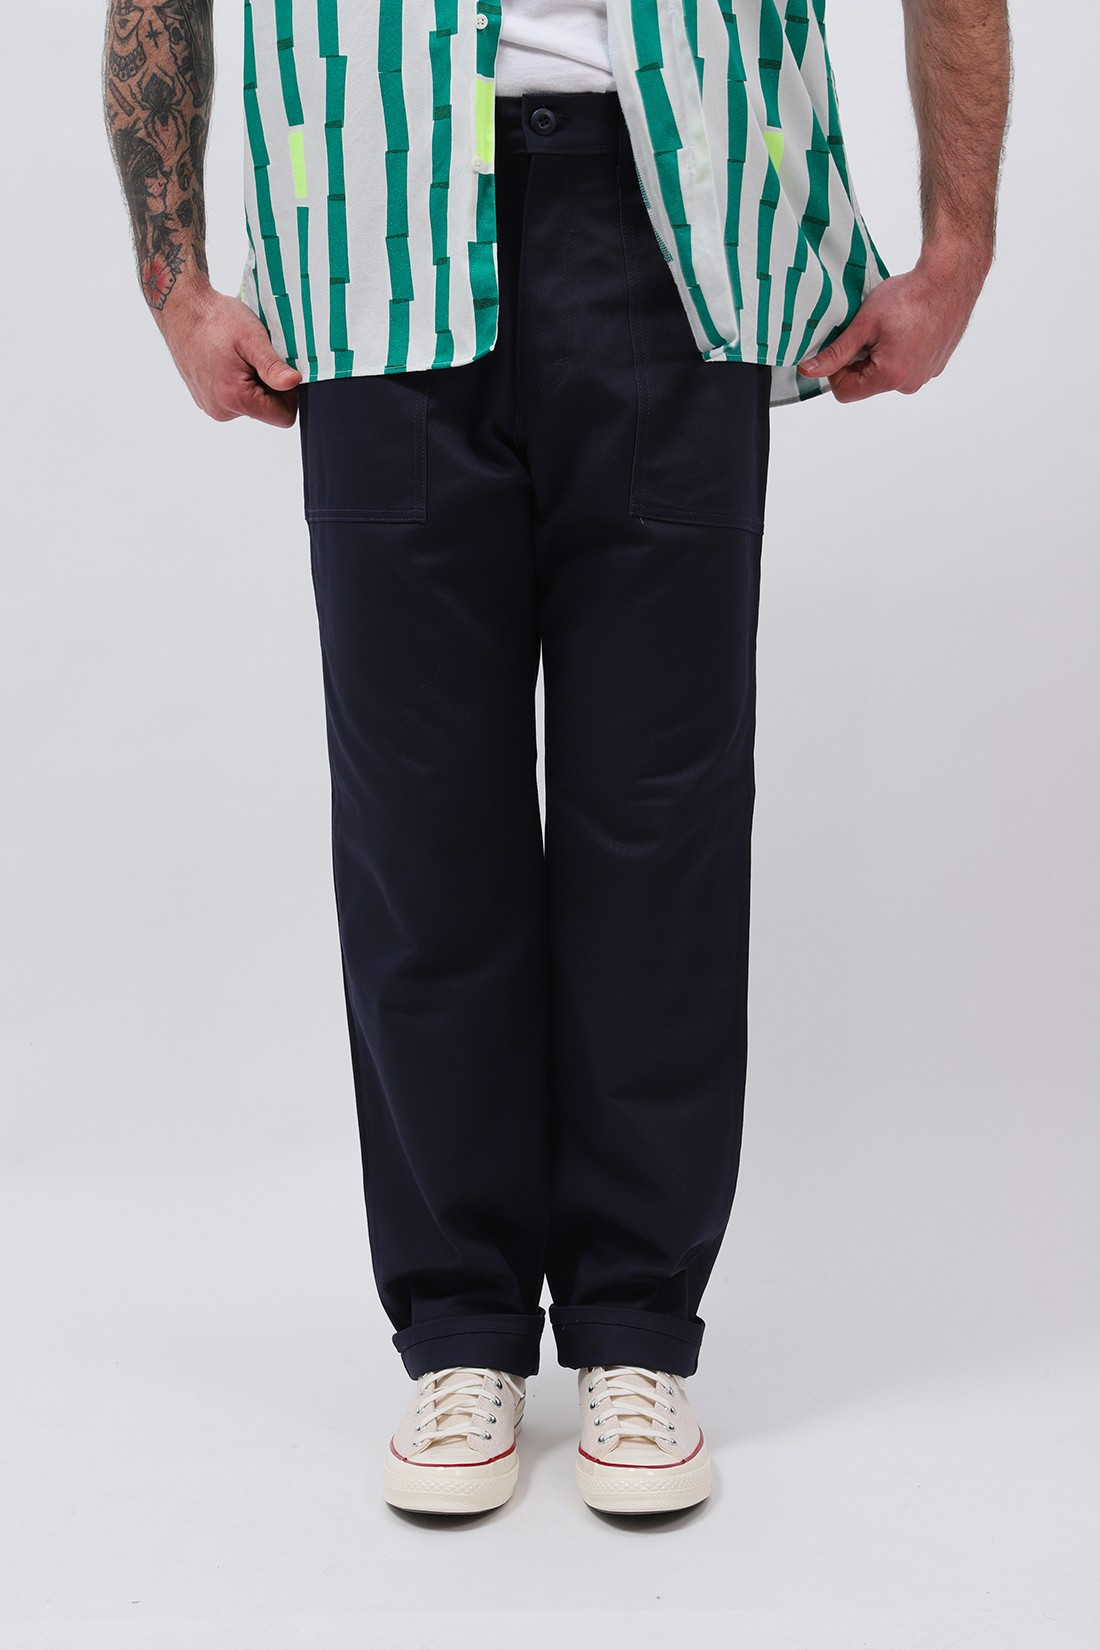 STAN RAY / Taper fatigue pant Navy